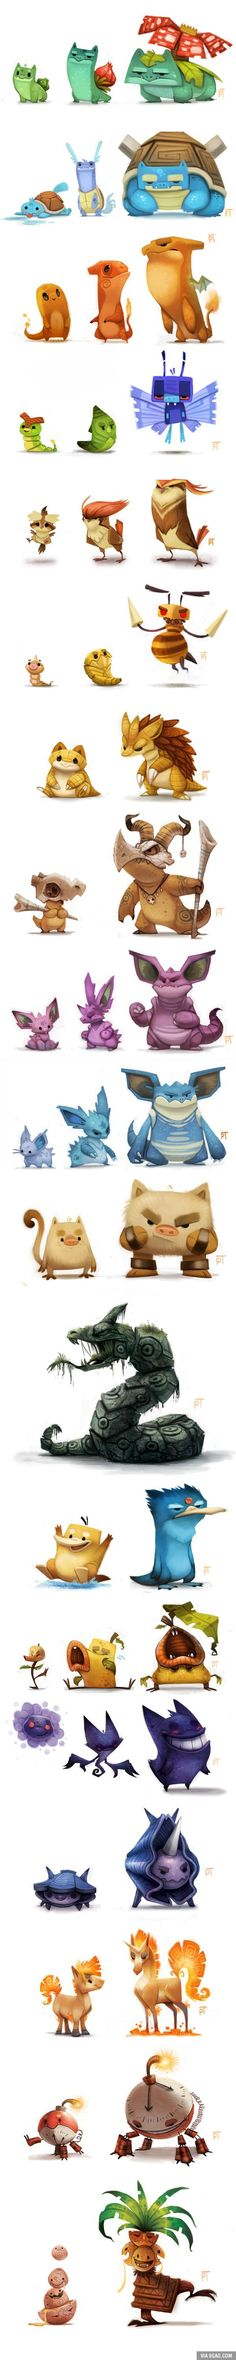 Insane Pokemon art (By Piper Thibodeau). Character design and concept art illustration. Fan Art Pokemon, Les Pokemon, Pokemon Remake, Pokemon Tattoo, Game Character, Character Concept, Concept Art, Character Drawing, Creature Design